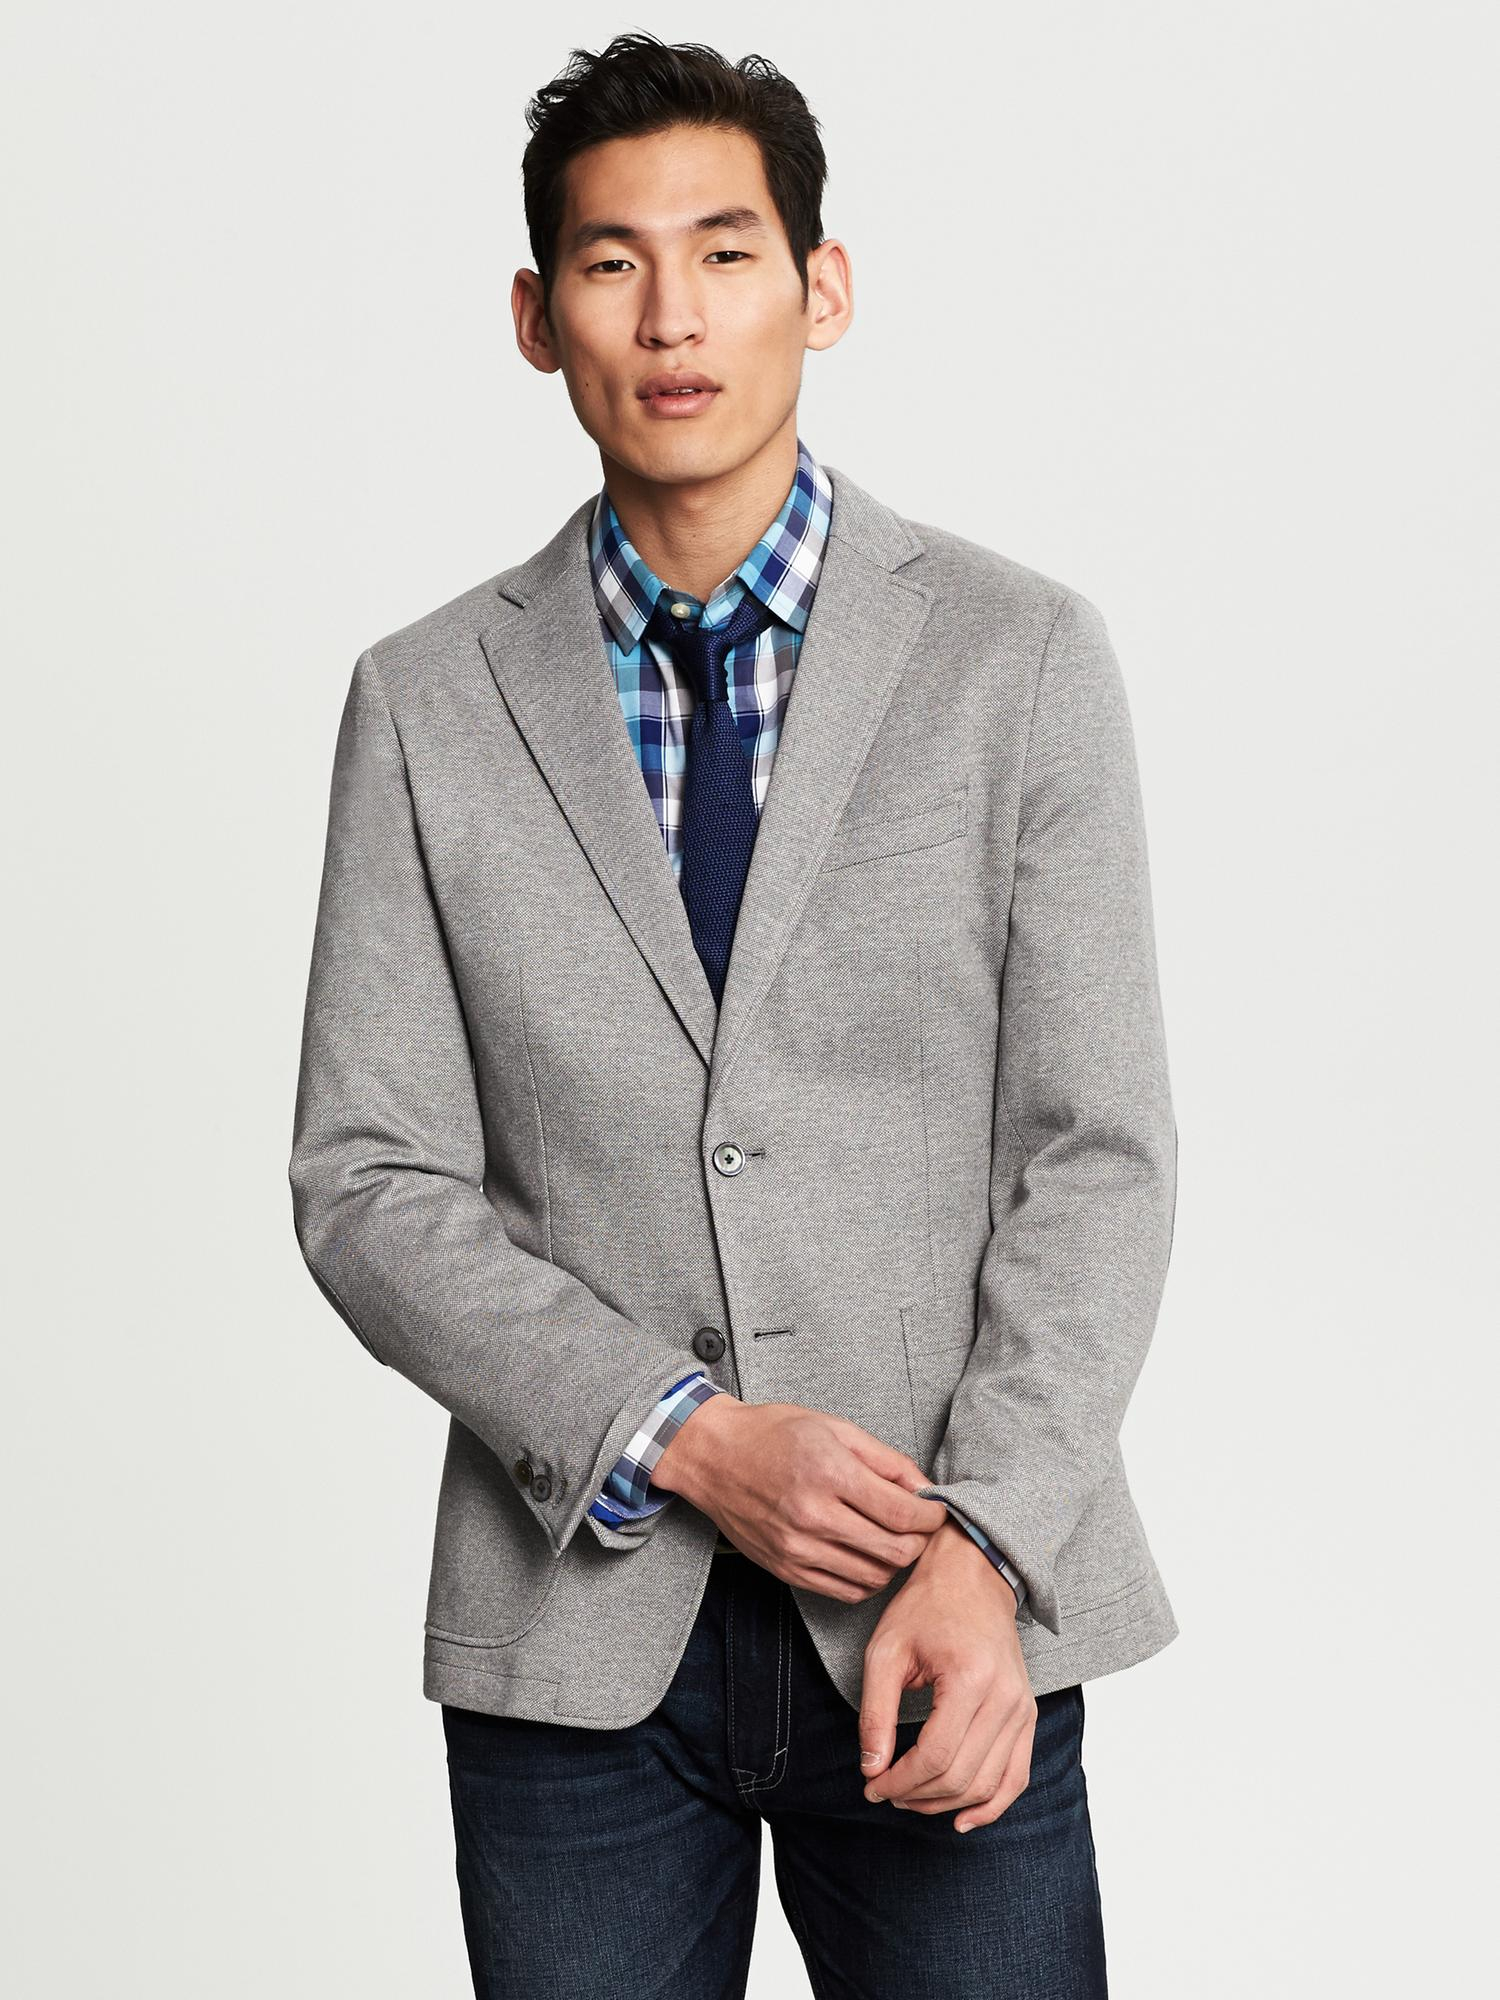 Browse men's clothing on sale at Banana Republic and get a new look at an outstanding price. Shop an Assortment of Handsome Designs. At Banana Republic, you'll find a host of inspired styles in the men's clothes sale section.